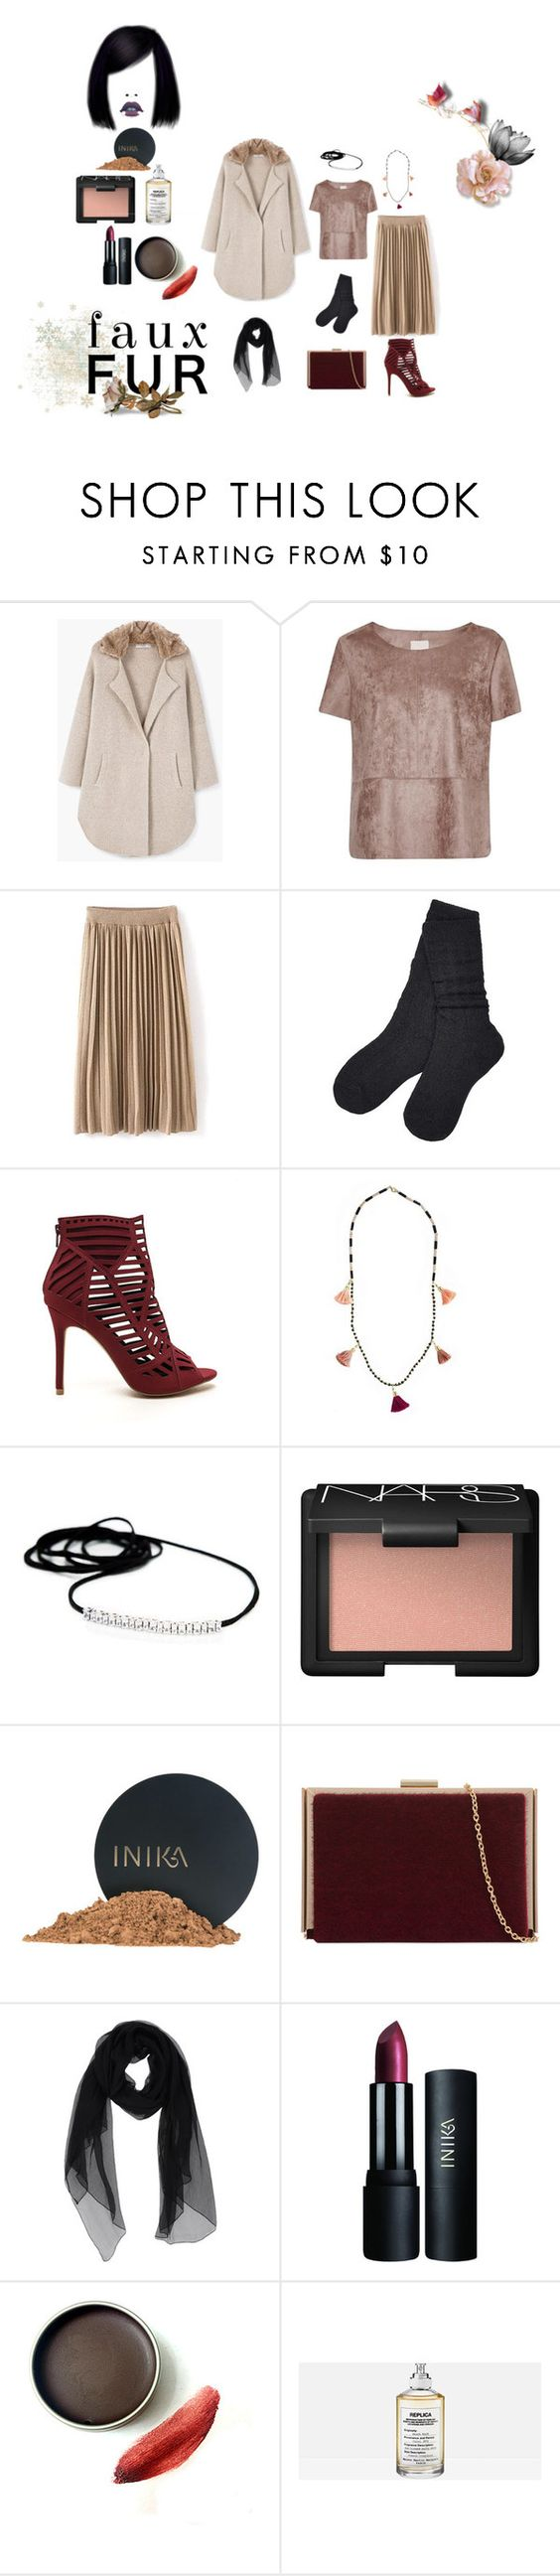 """""""Fauxy!"""" by a-anja ❤ liked on Polyvore featuring MANGO, Great Plains, UGG, NARS Cosmetics, INIKA, KI6? Who Are You? and Maison Margiela"""